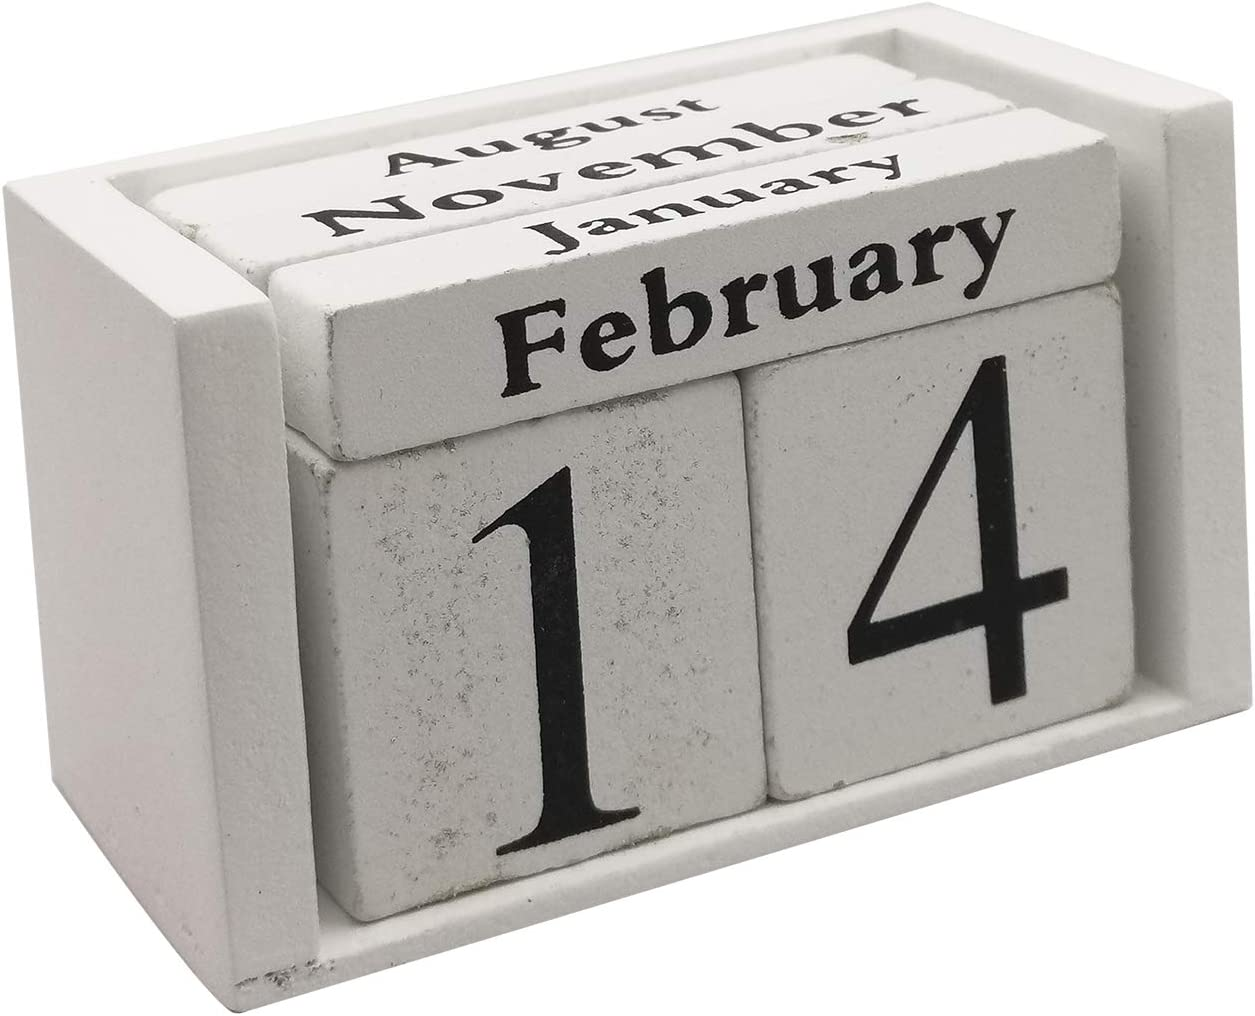 Small Wooden Desk Blocks Calendar - Perpetual Block Month Date Display Home Office Decoration(White), 3.7 x 2.1 x 1.7 inches